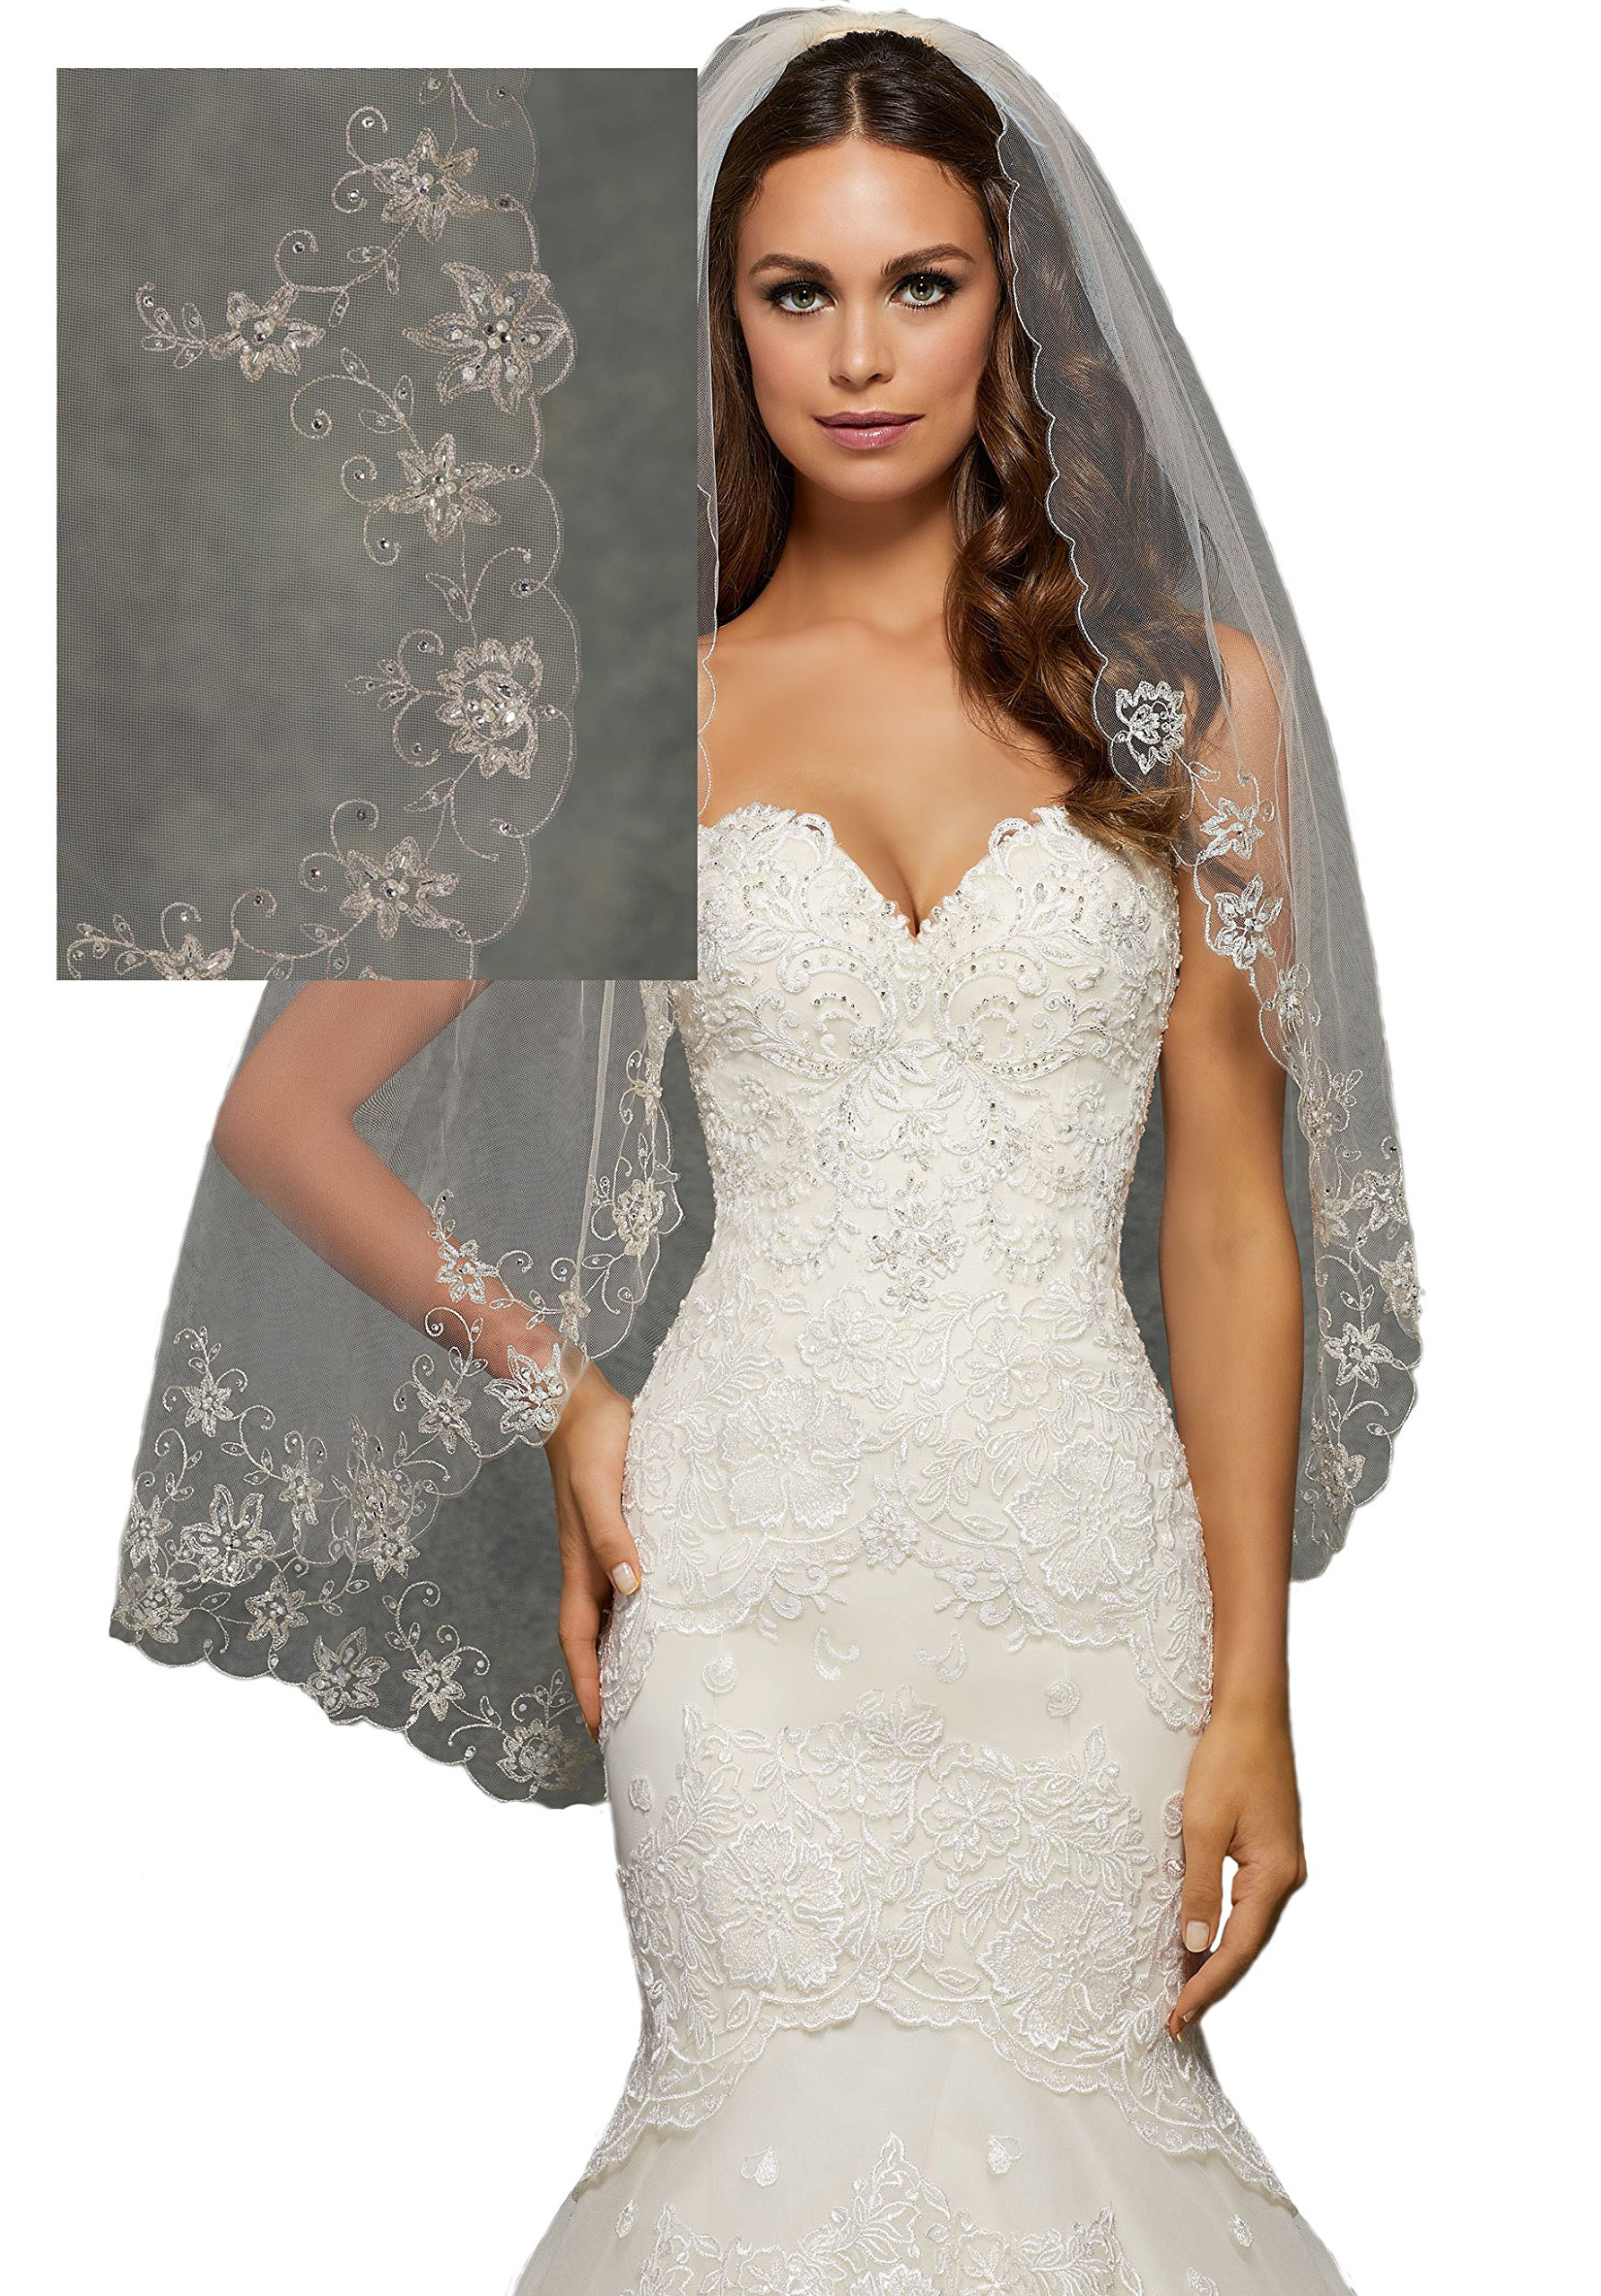 Passat Champagne Single-Tier 36''Fingertip Length Wedding Veil Embroidered with Pearls and Rhinestones VL1043